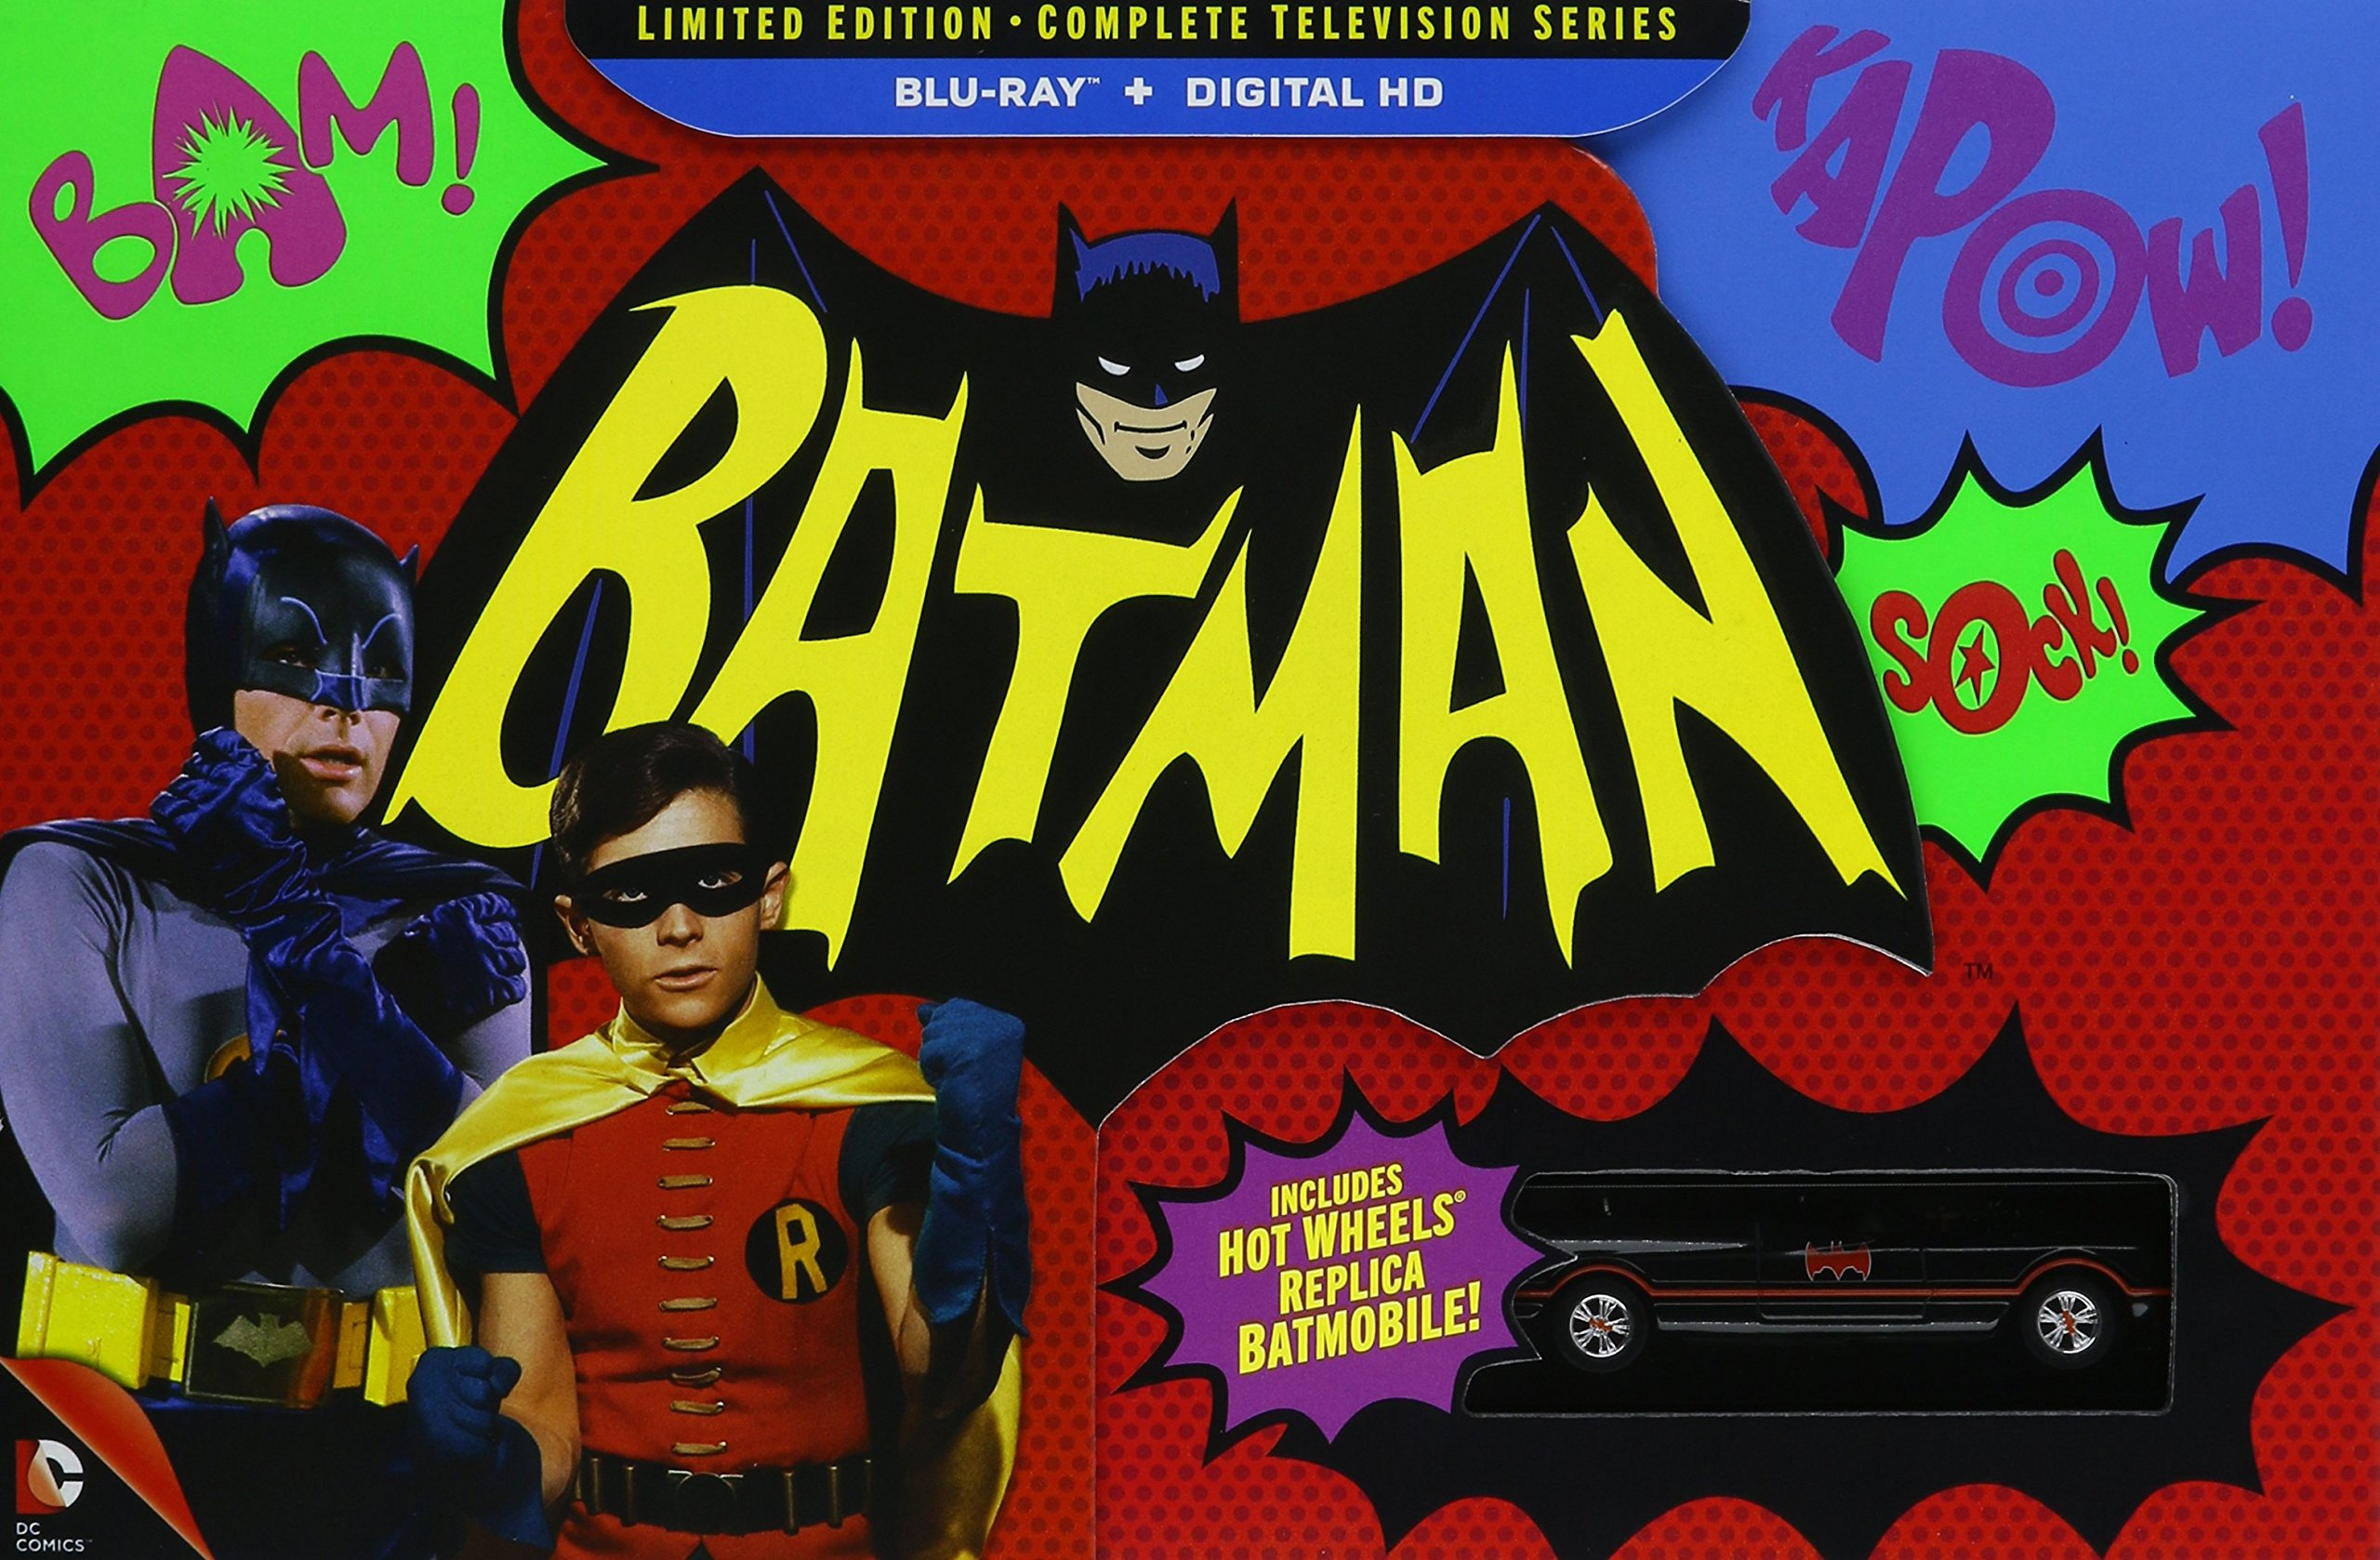 Batman: The Complete Television Series (Limited Edition) [Blu-ray] by Warner Manufacturing